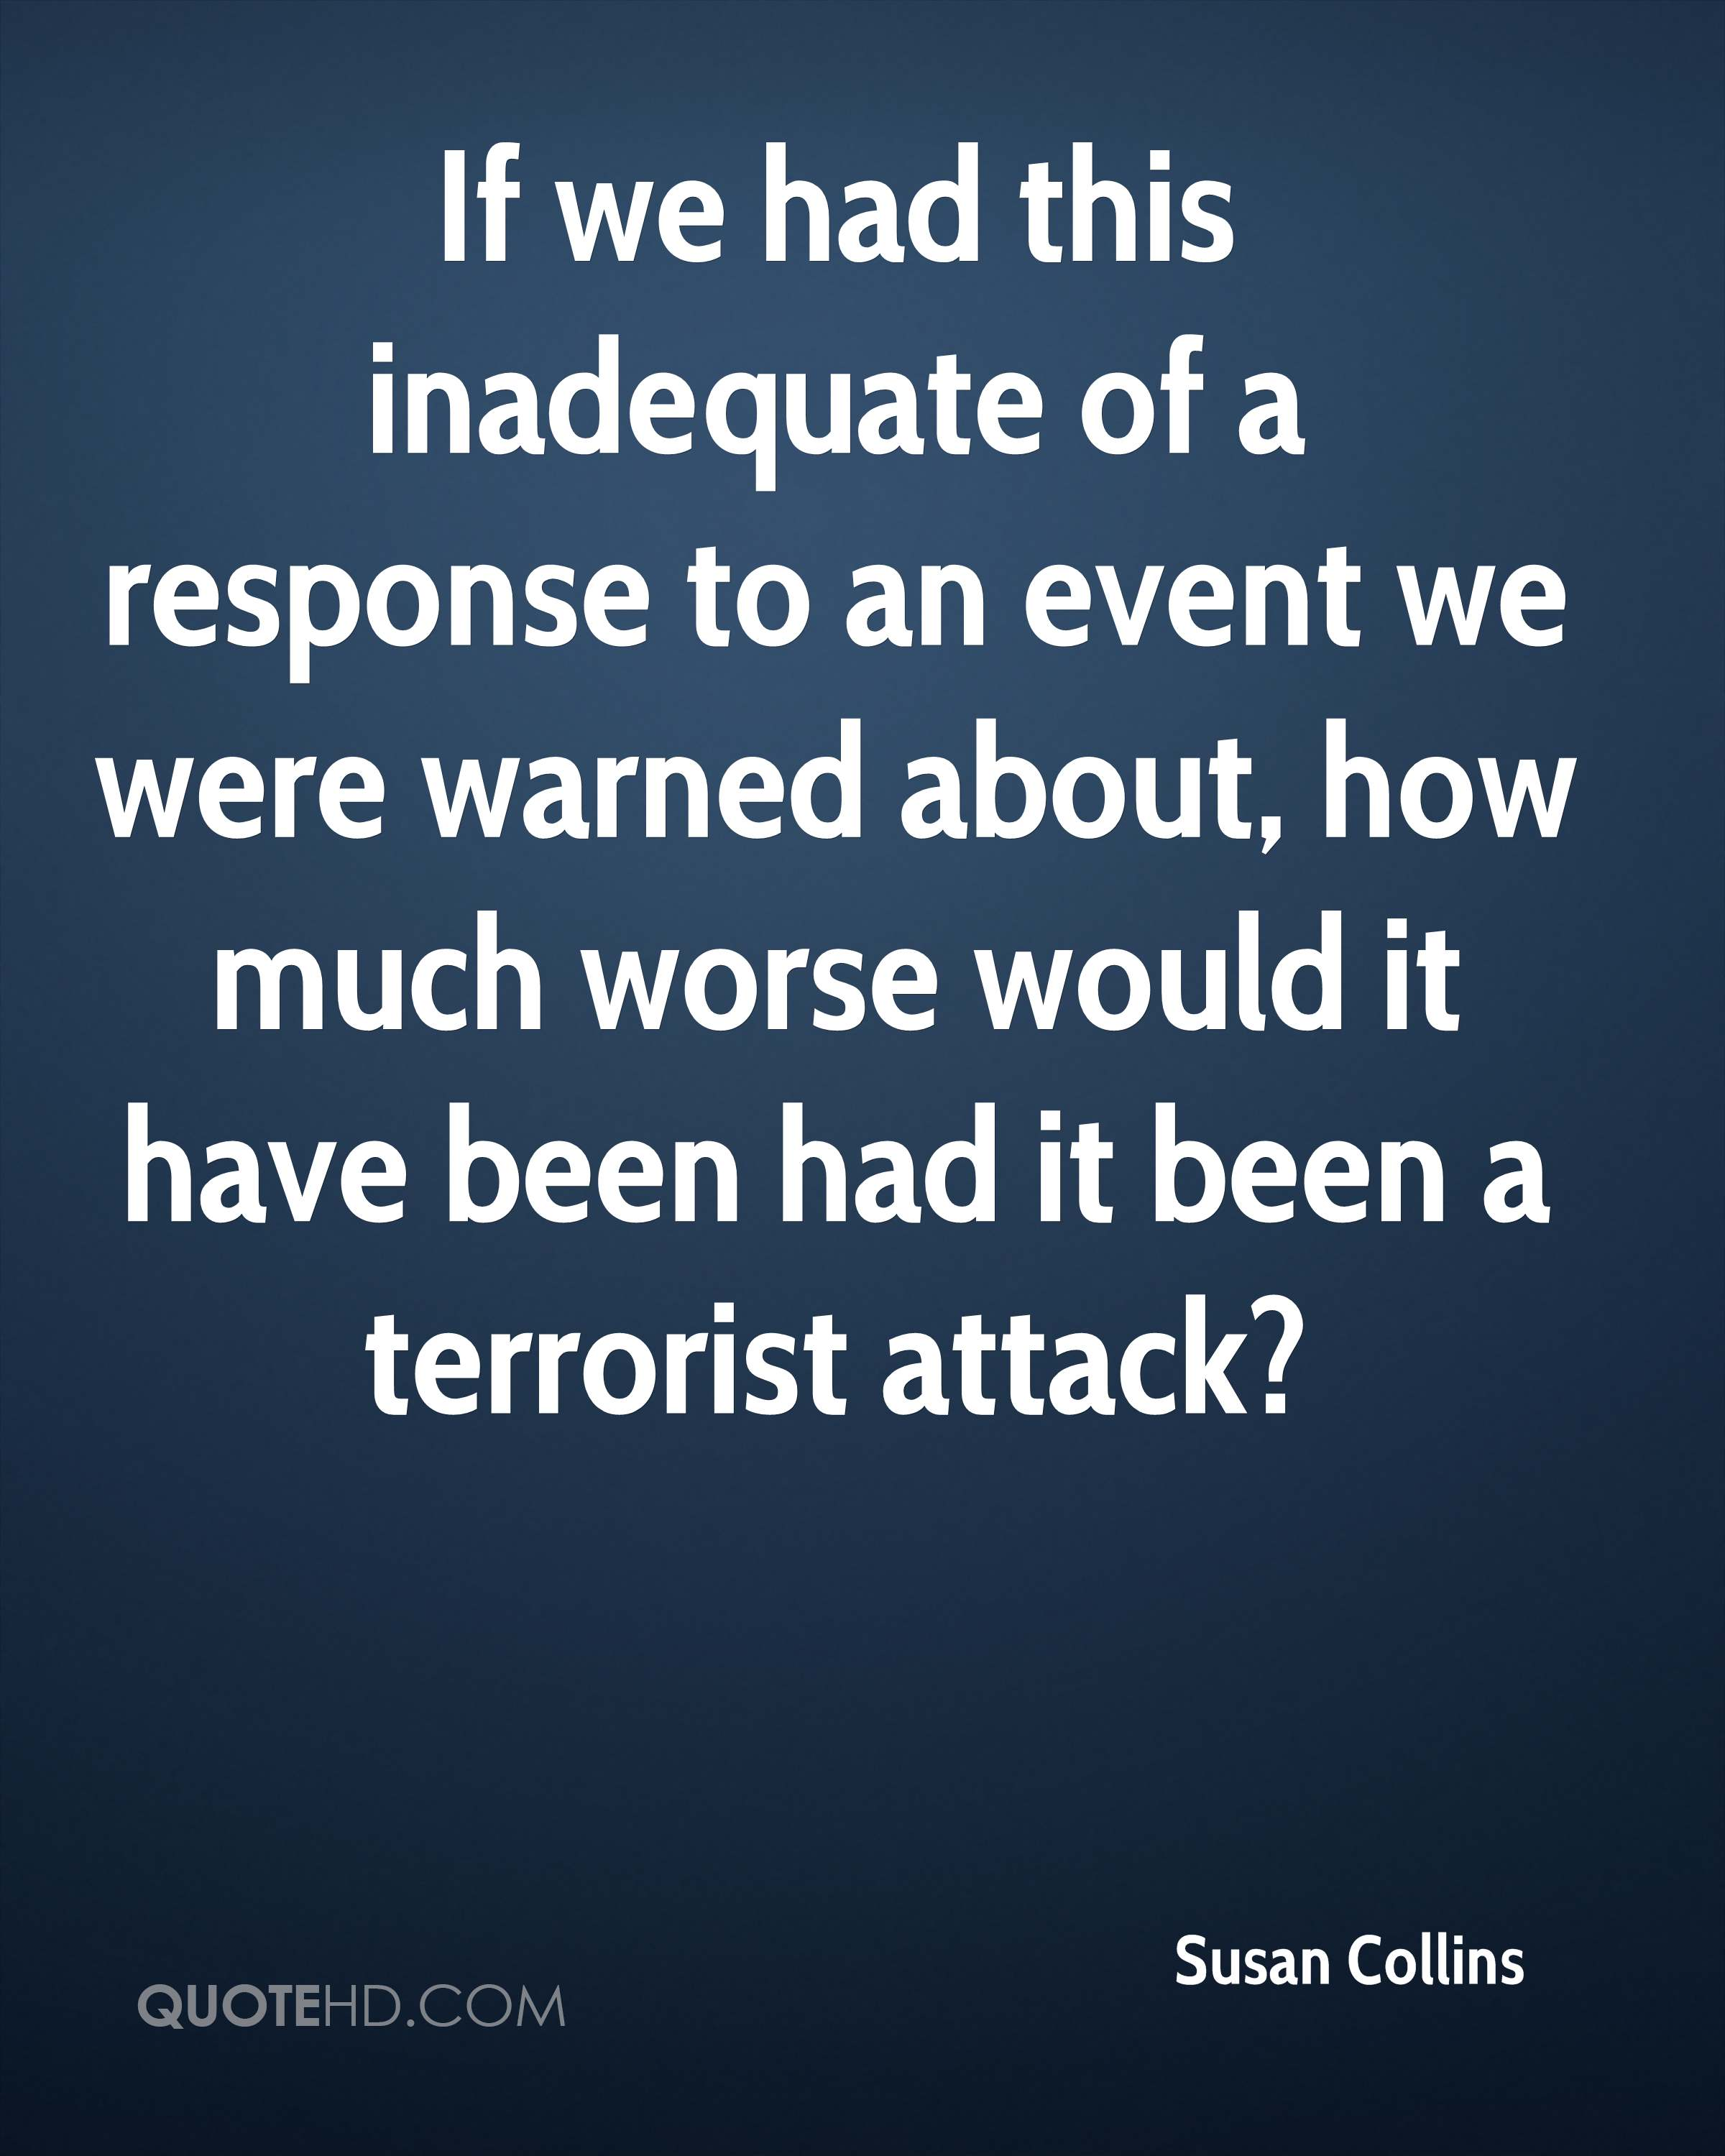 If we had this inadequate of a response to an event we were warned about, how much worse would it have been had it been a terrorist attack?